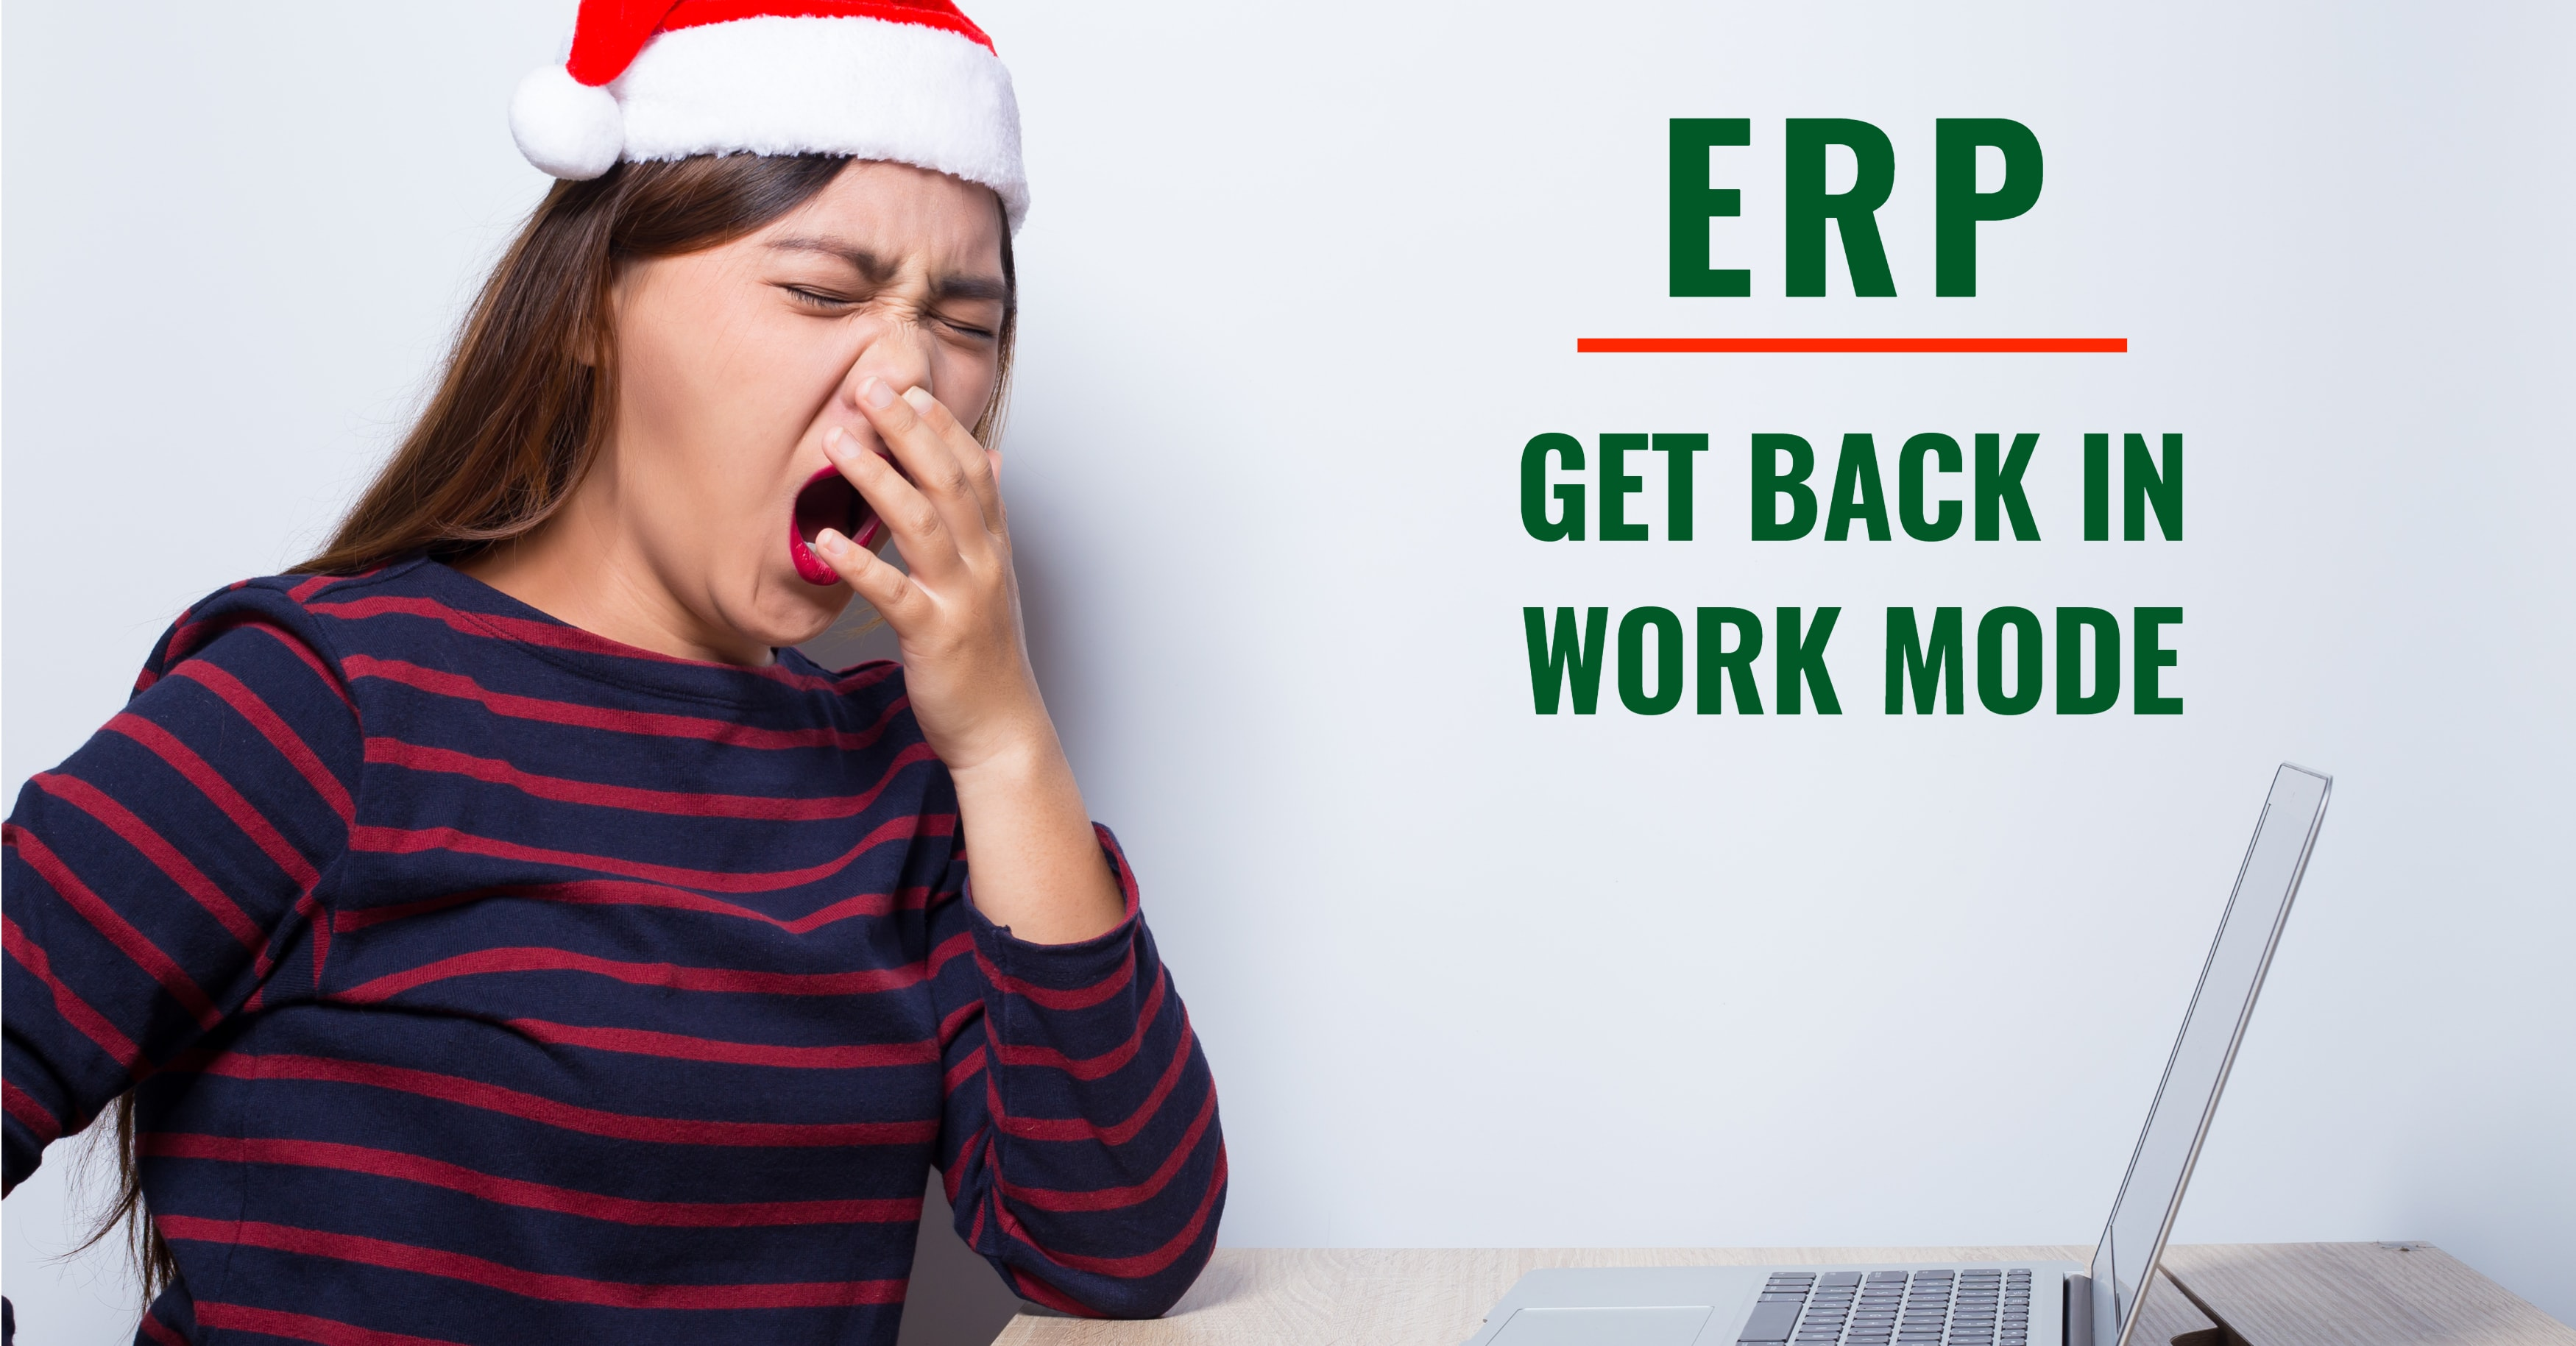 How ERP Helps You Get Back in Work Mode